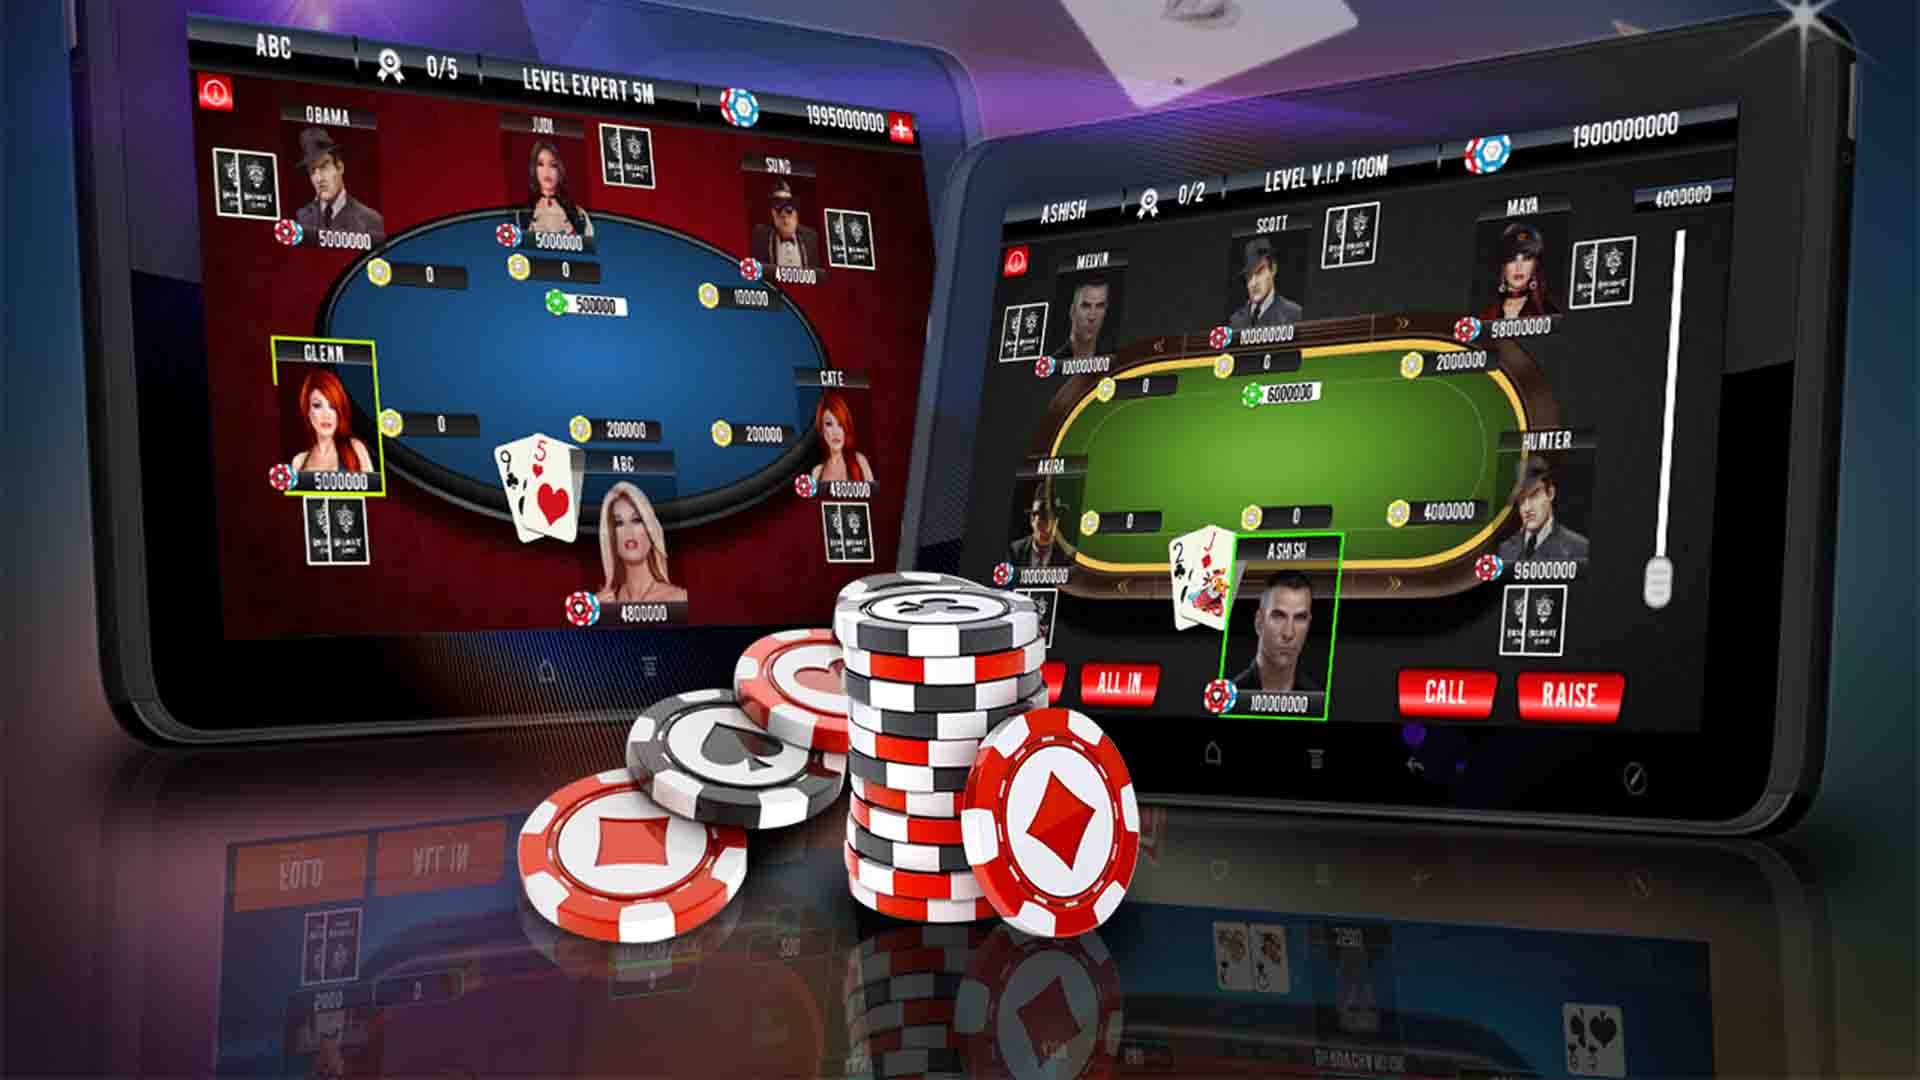 Selecting Online Casino Is Easy